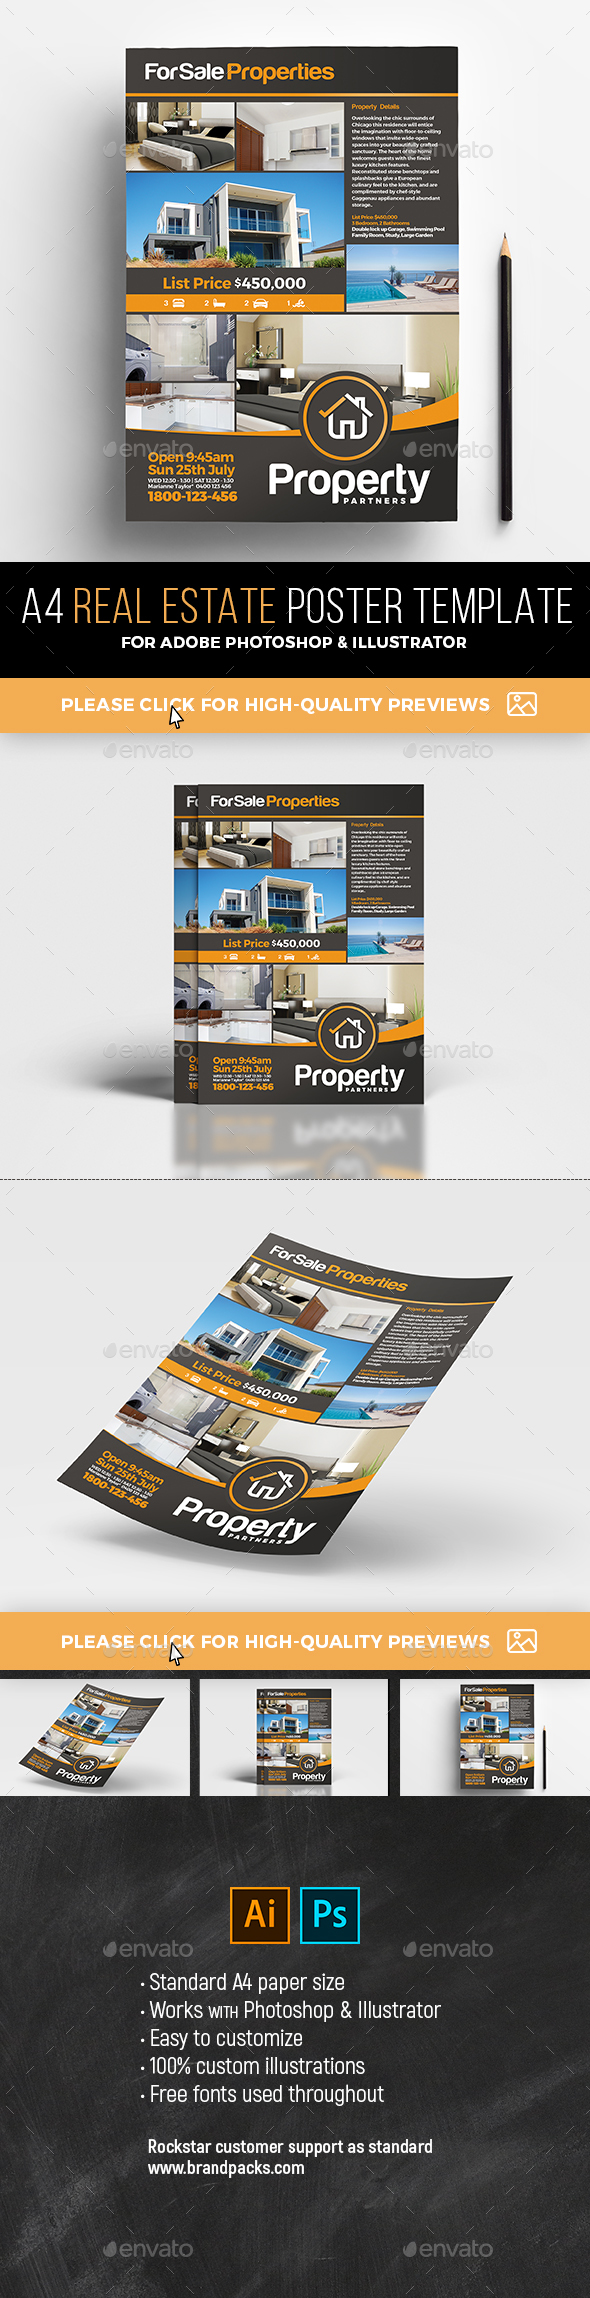 Real Estate Poster Template - Commerce Flyers